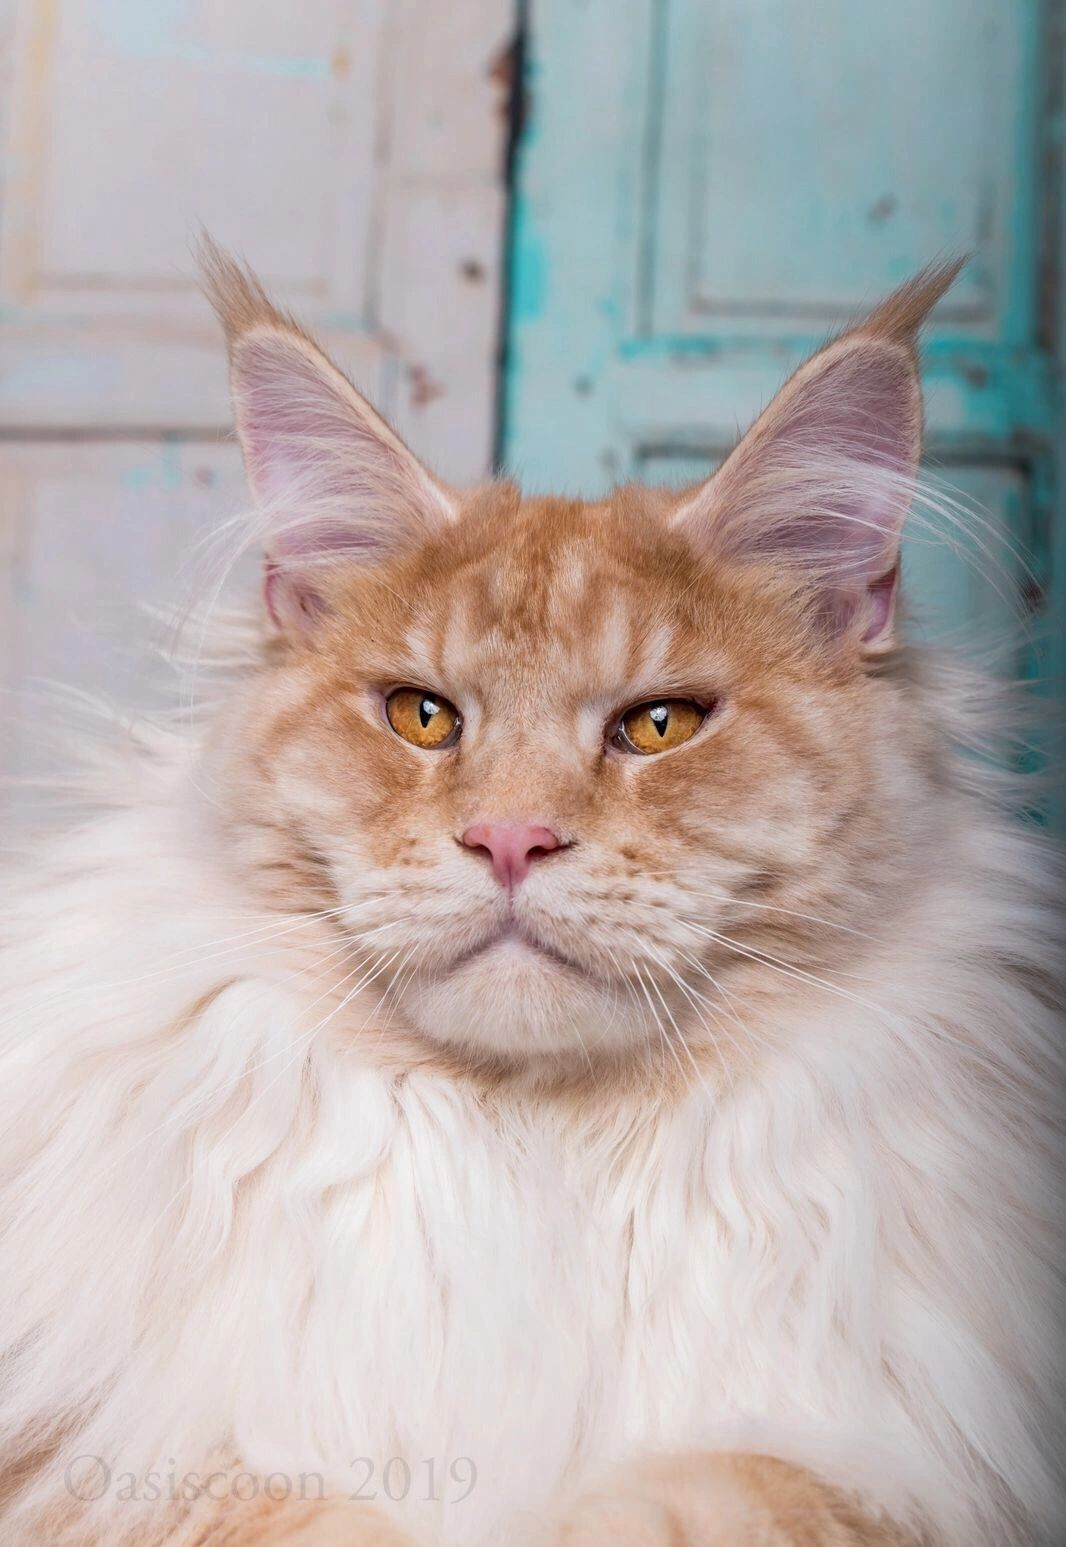 Maine Coon Oasiscoon